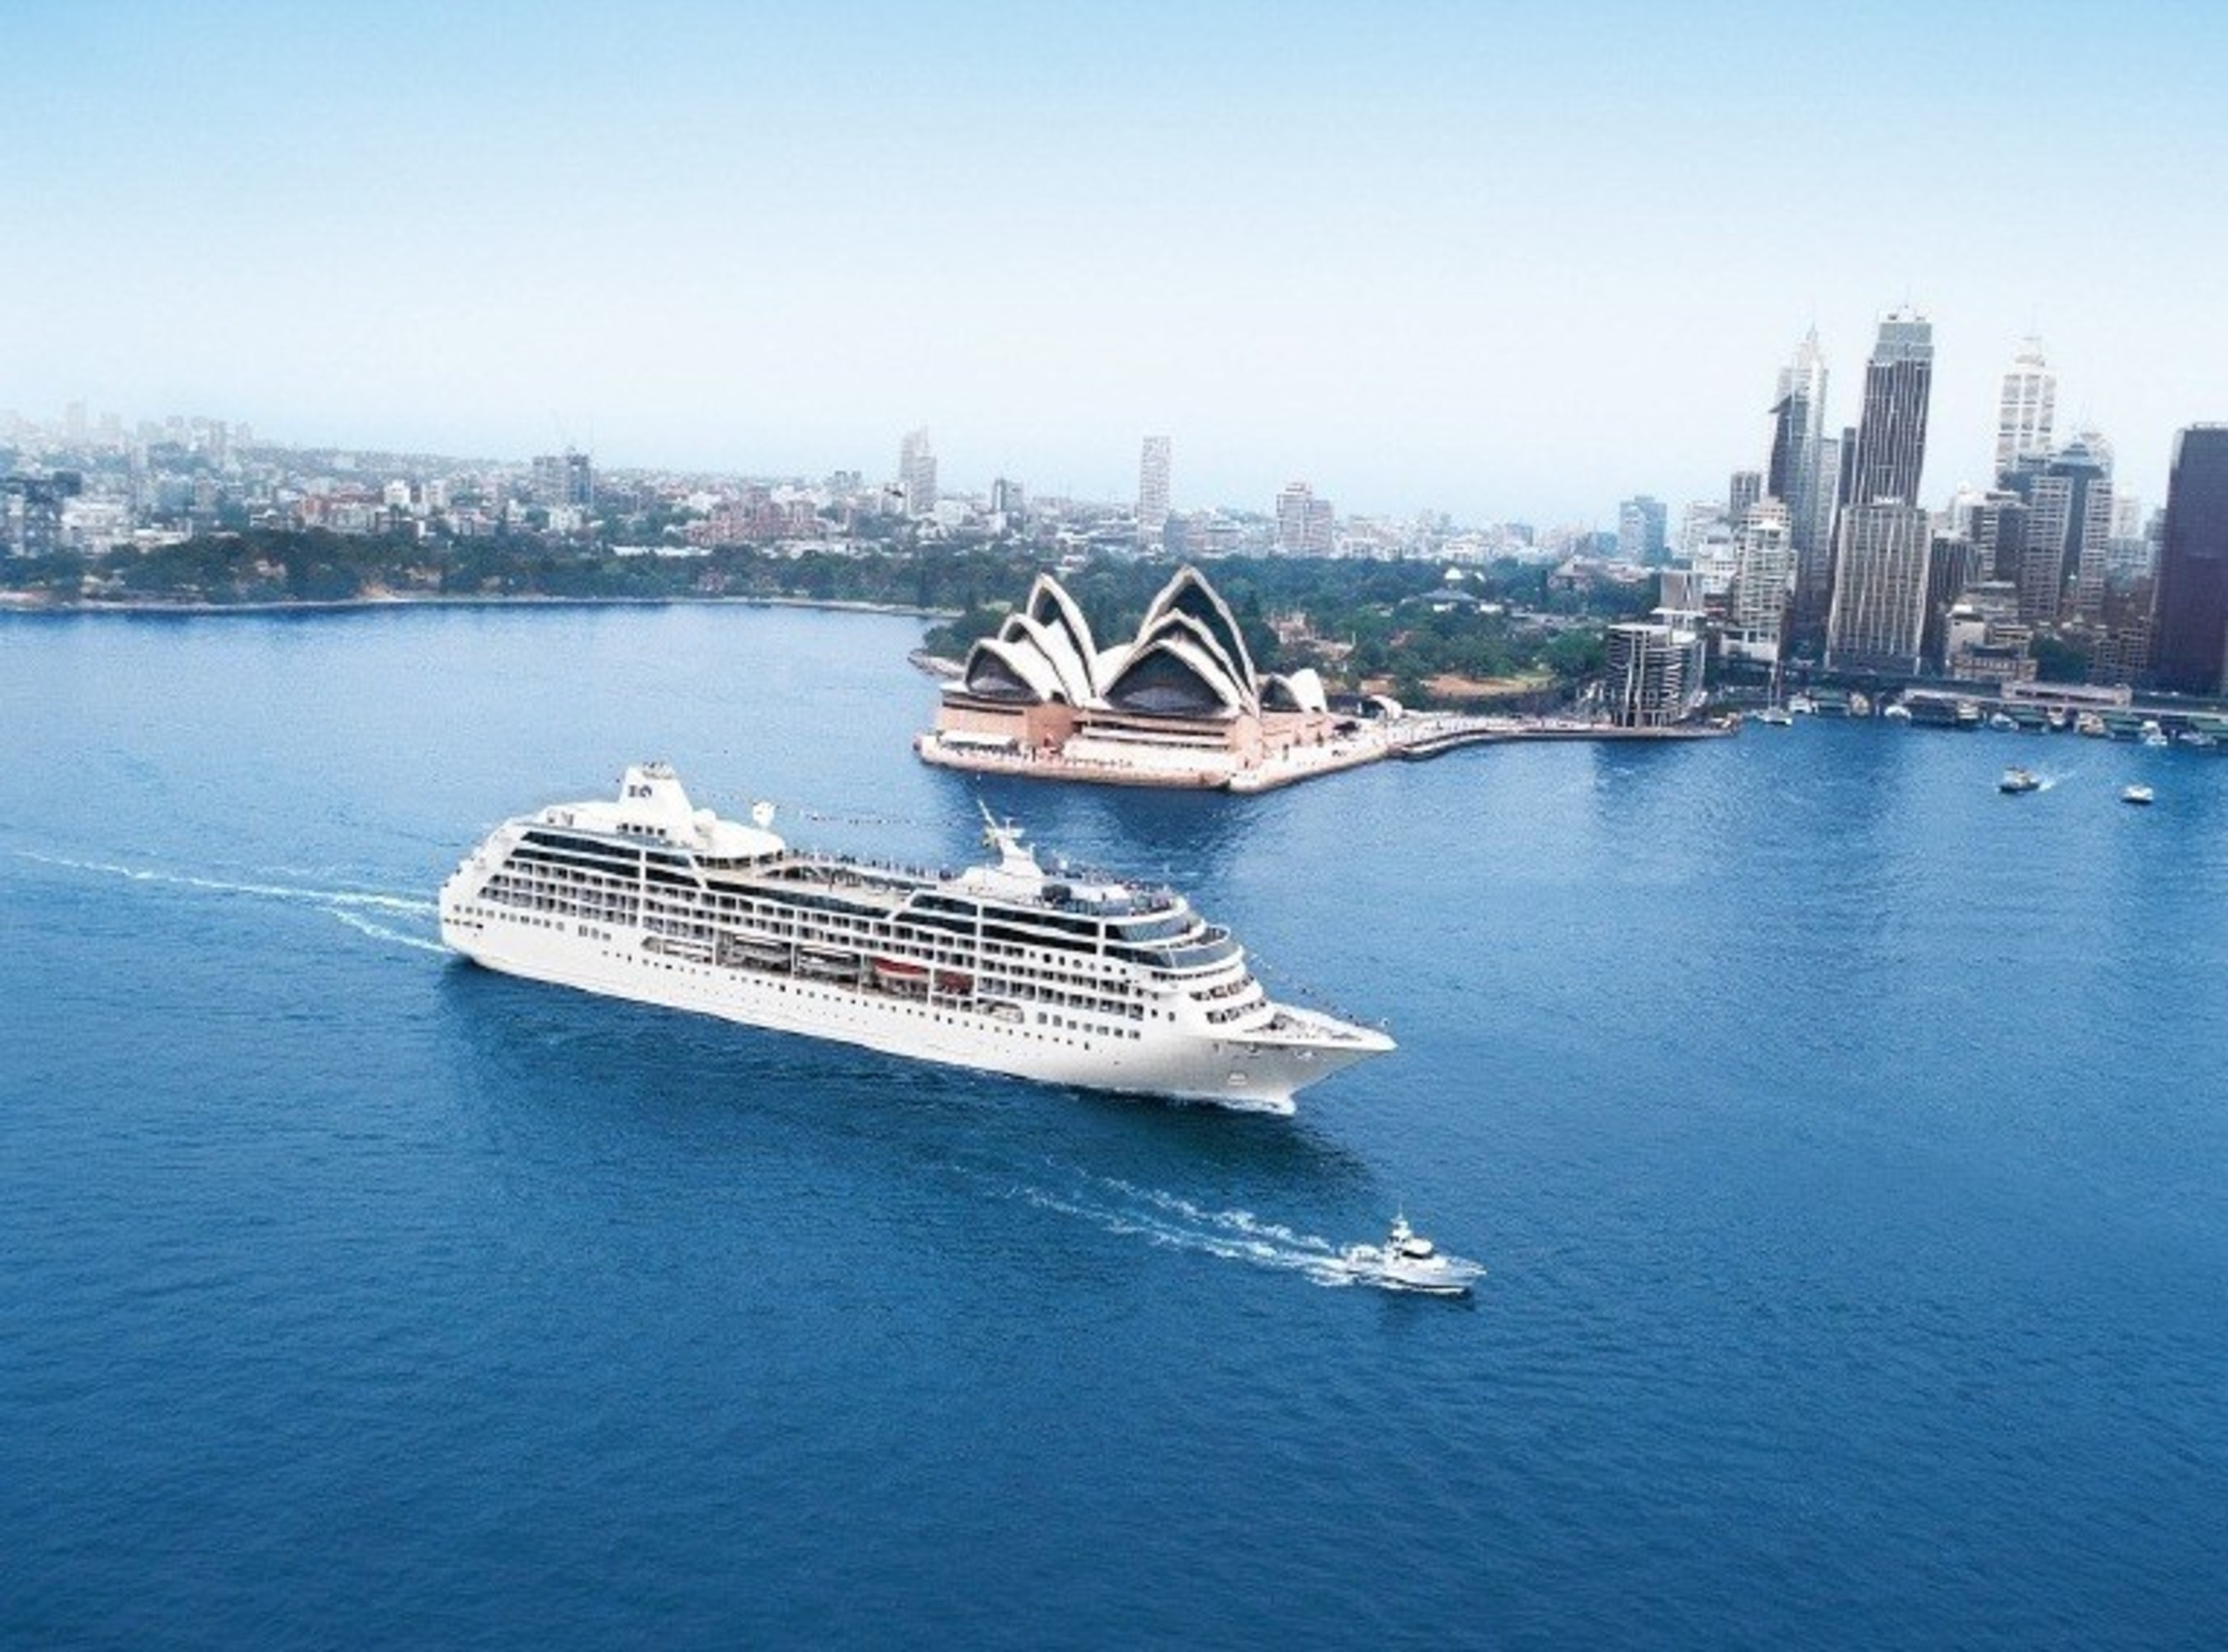 Princess Cruises Announces Largest-Ever Australia Deployment for 2016-2017